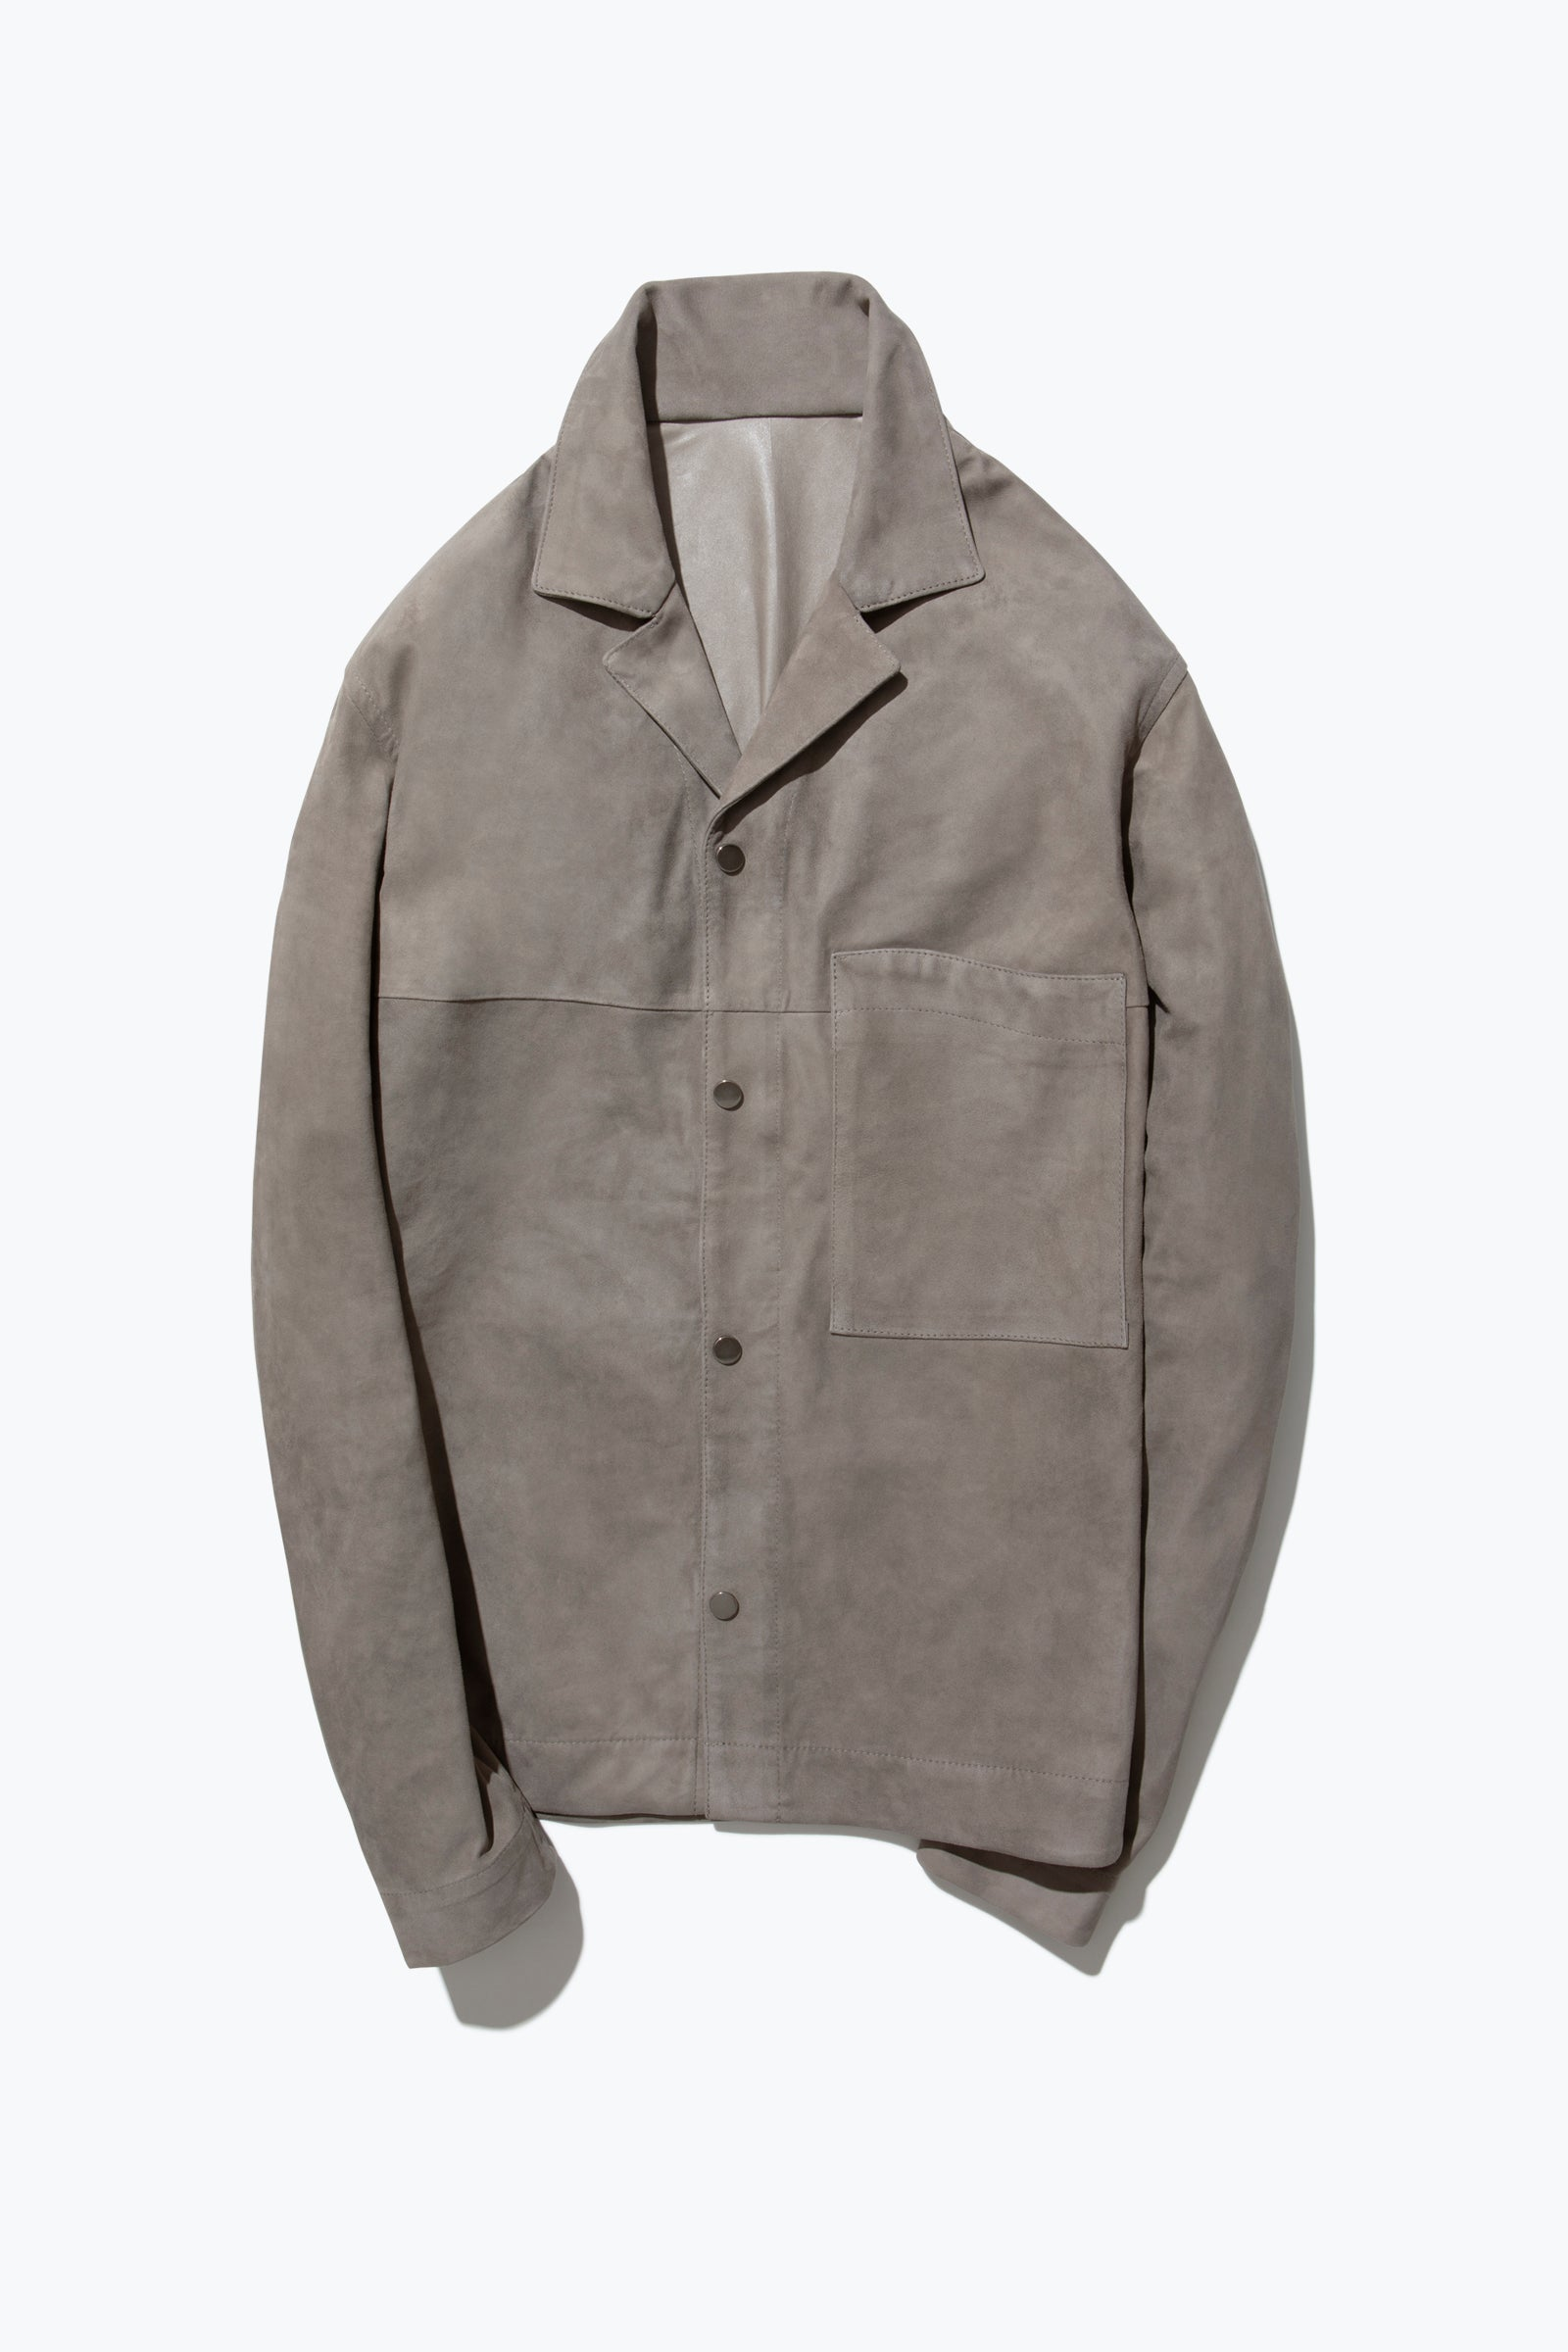 Edition 001 - Suede Overshirt (Taupe)